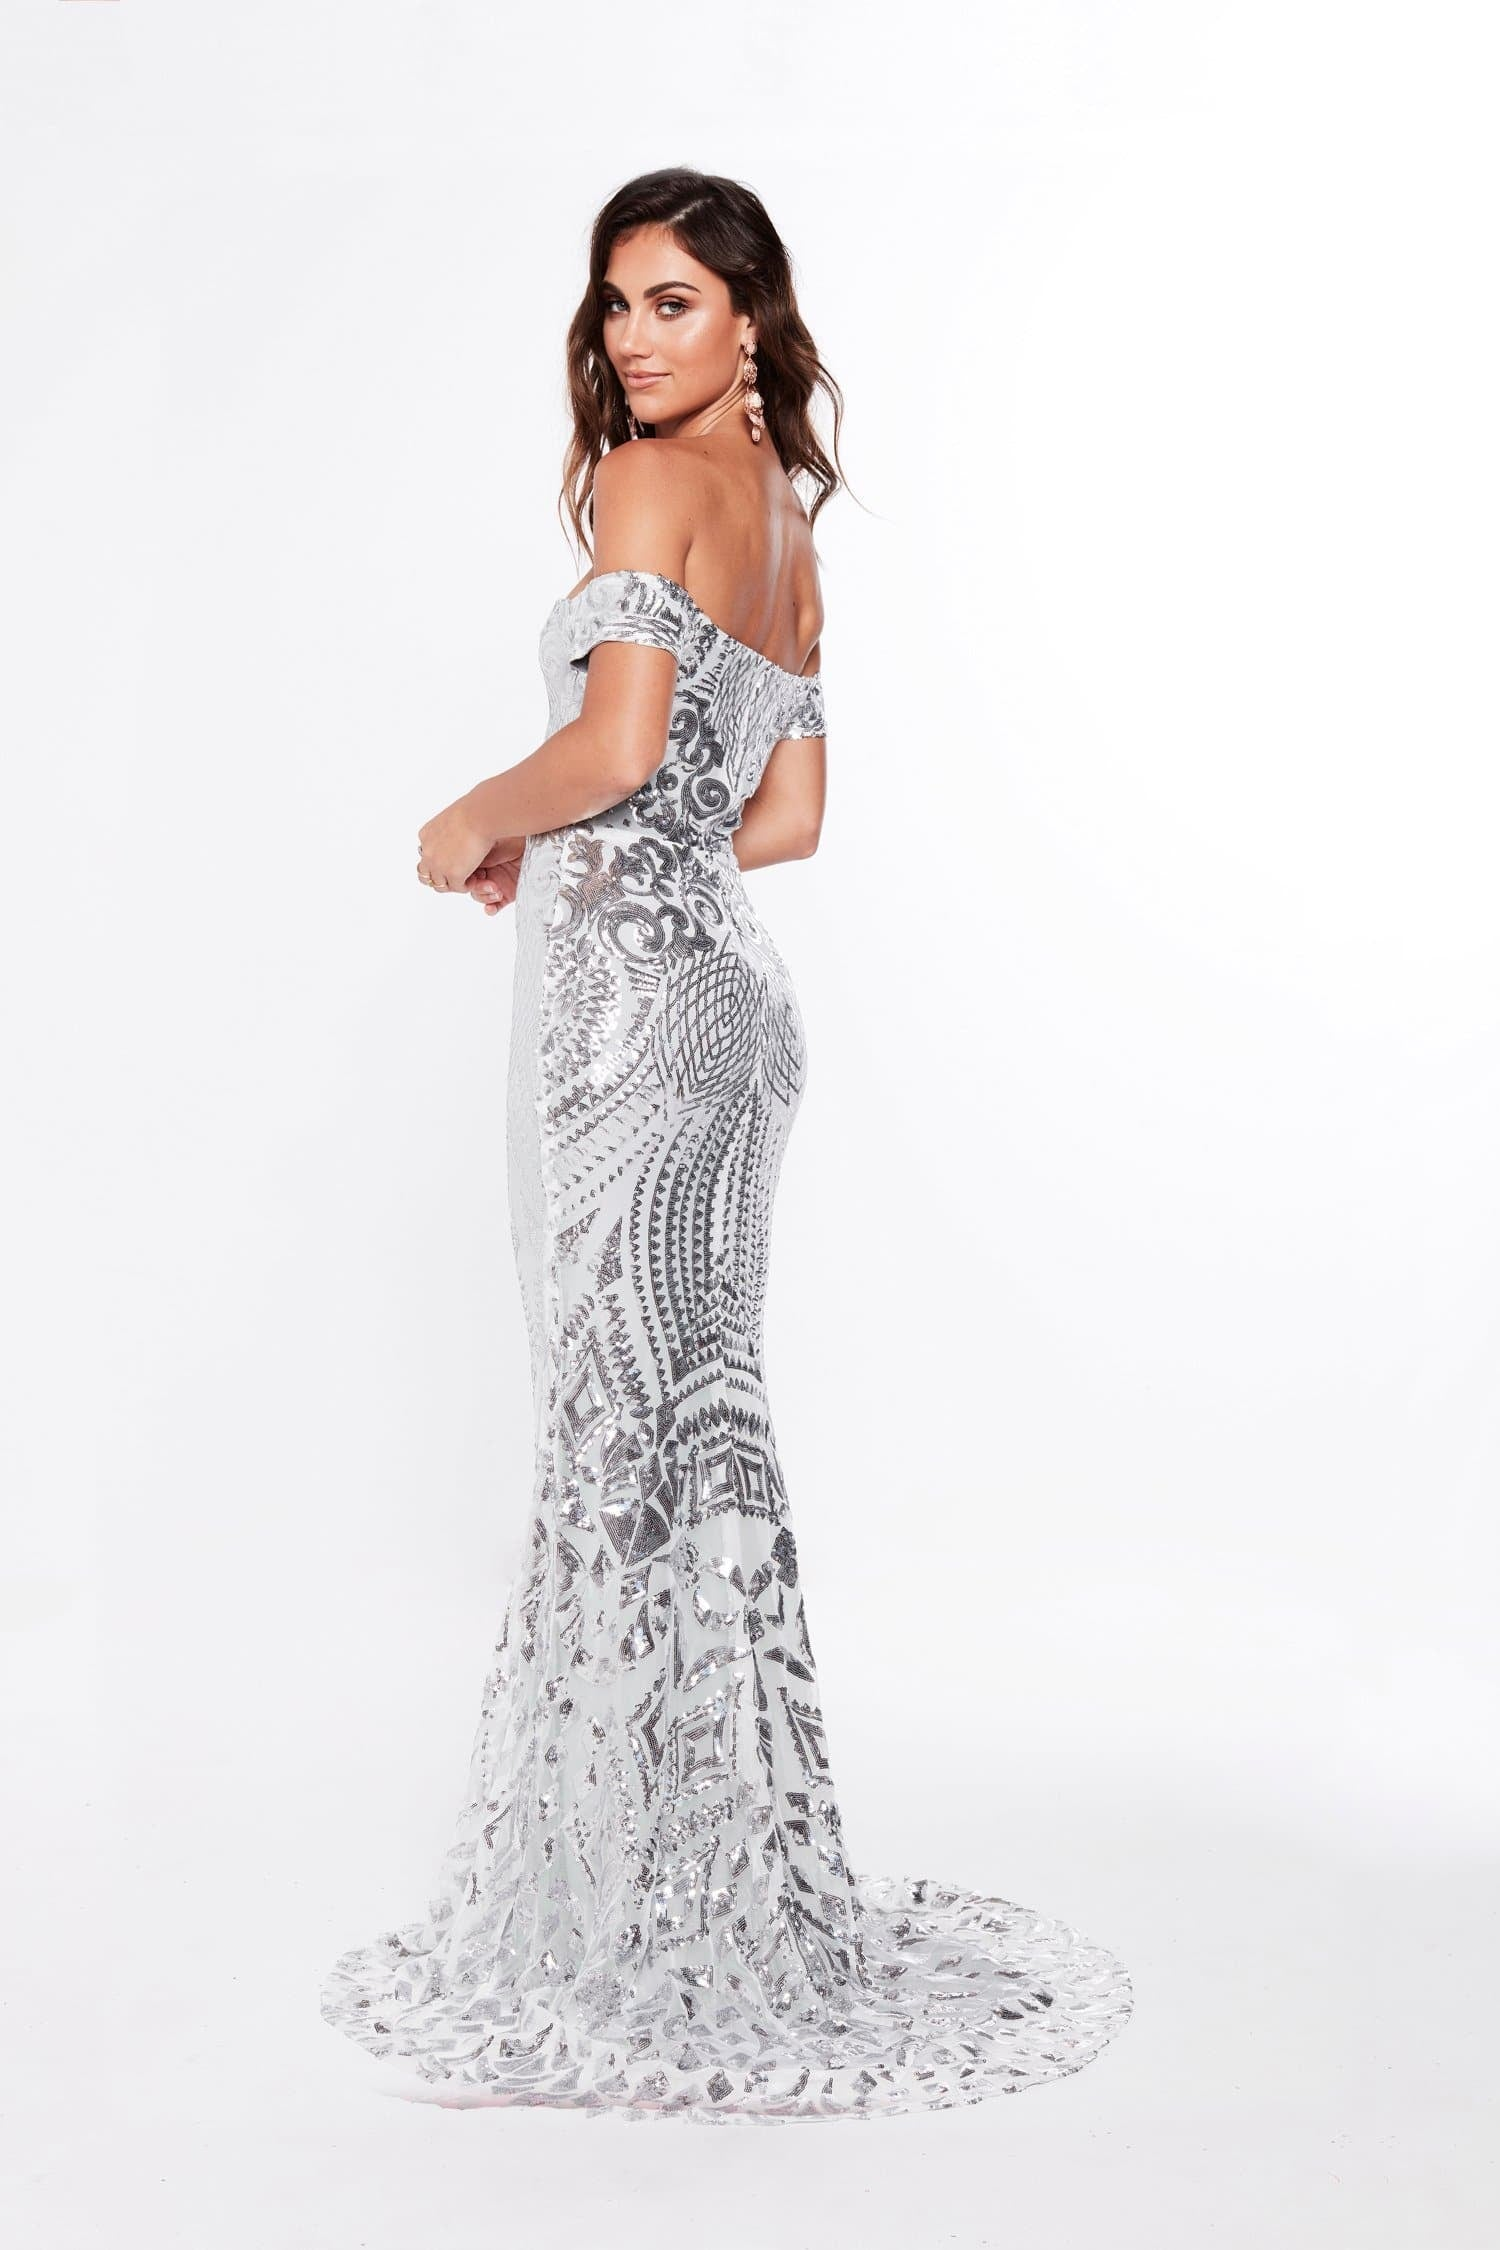 A&N Luxe Mia Off-Shoulder Gown - Silver